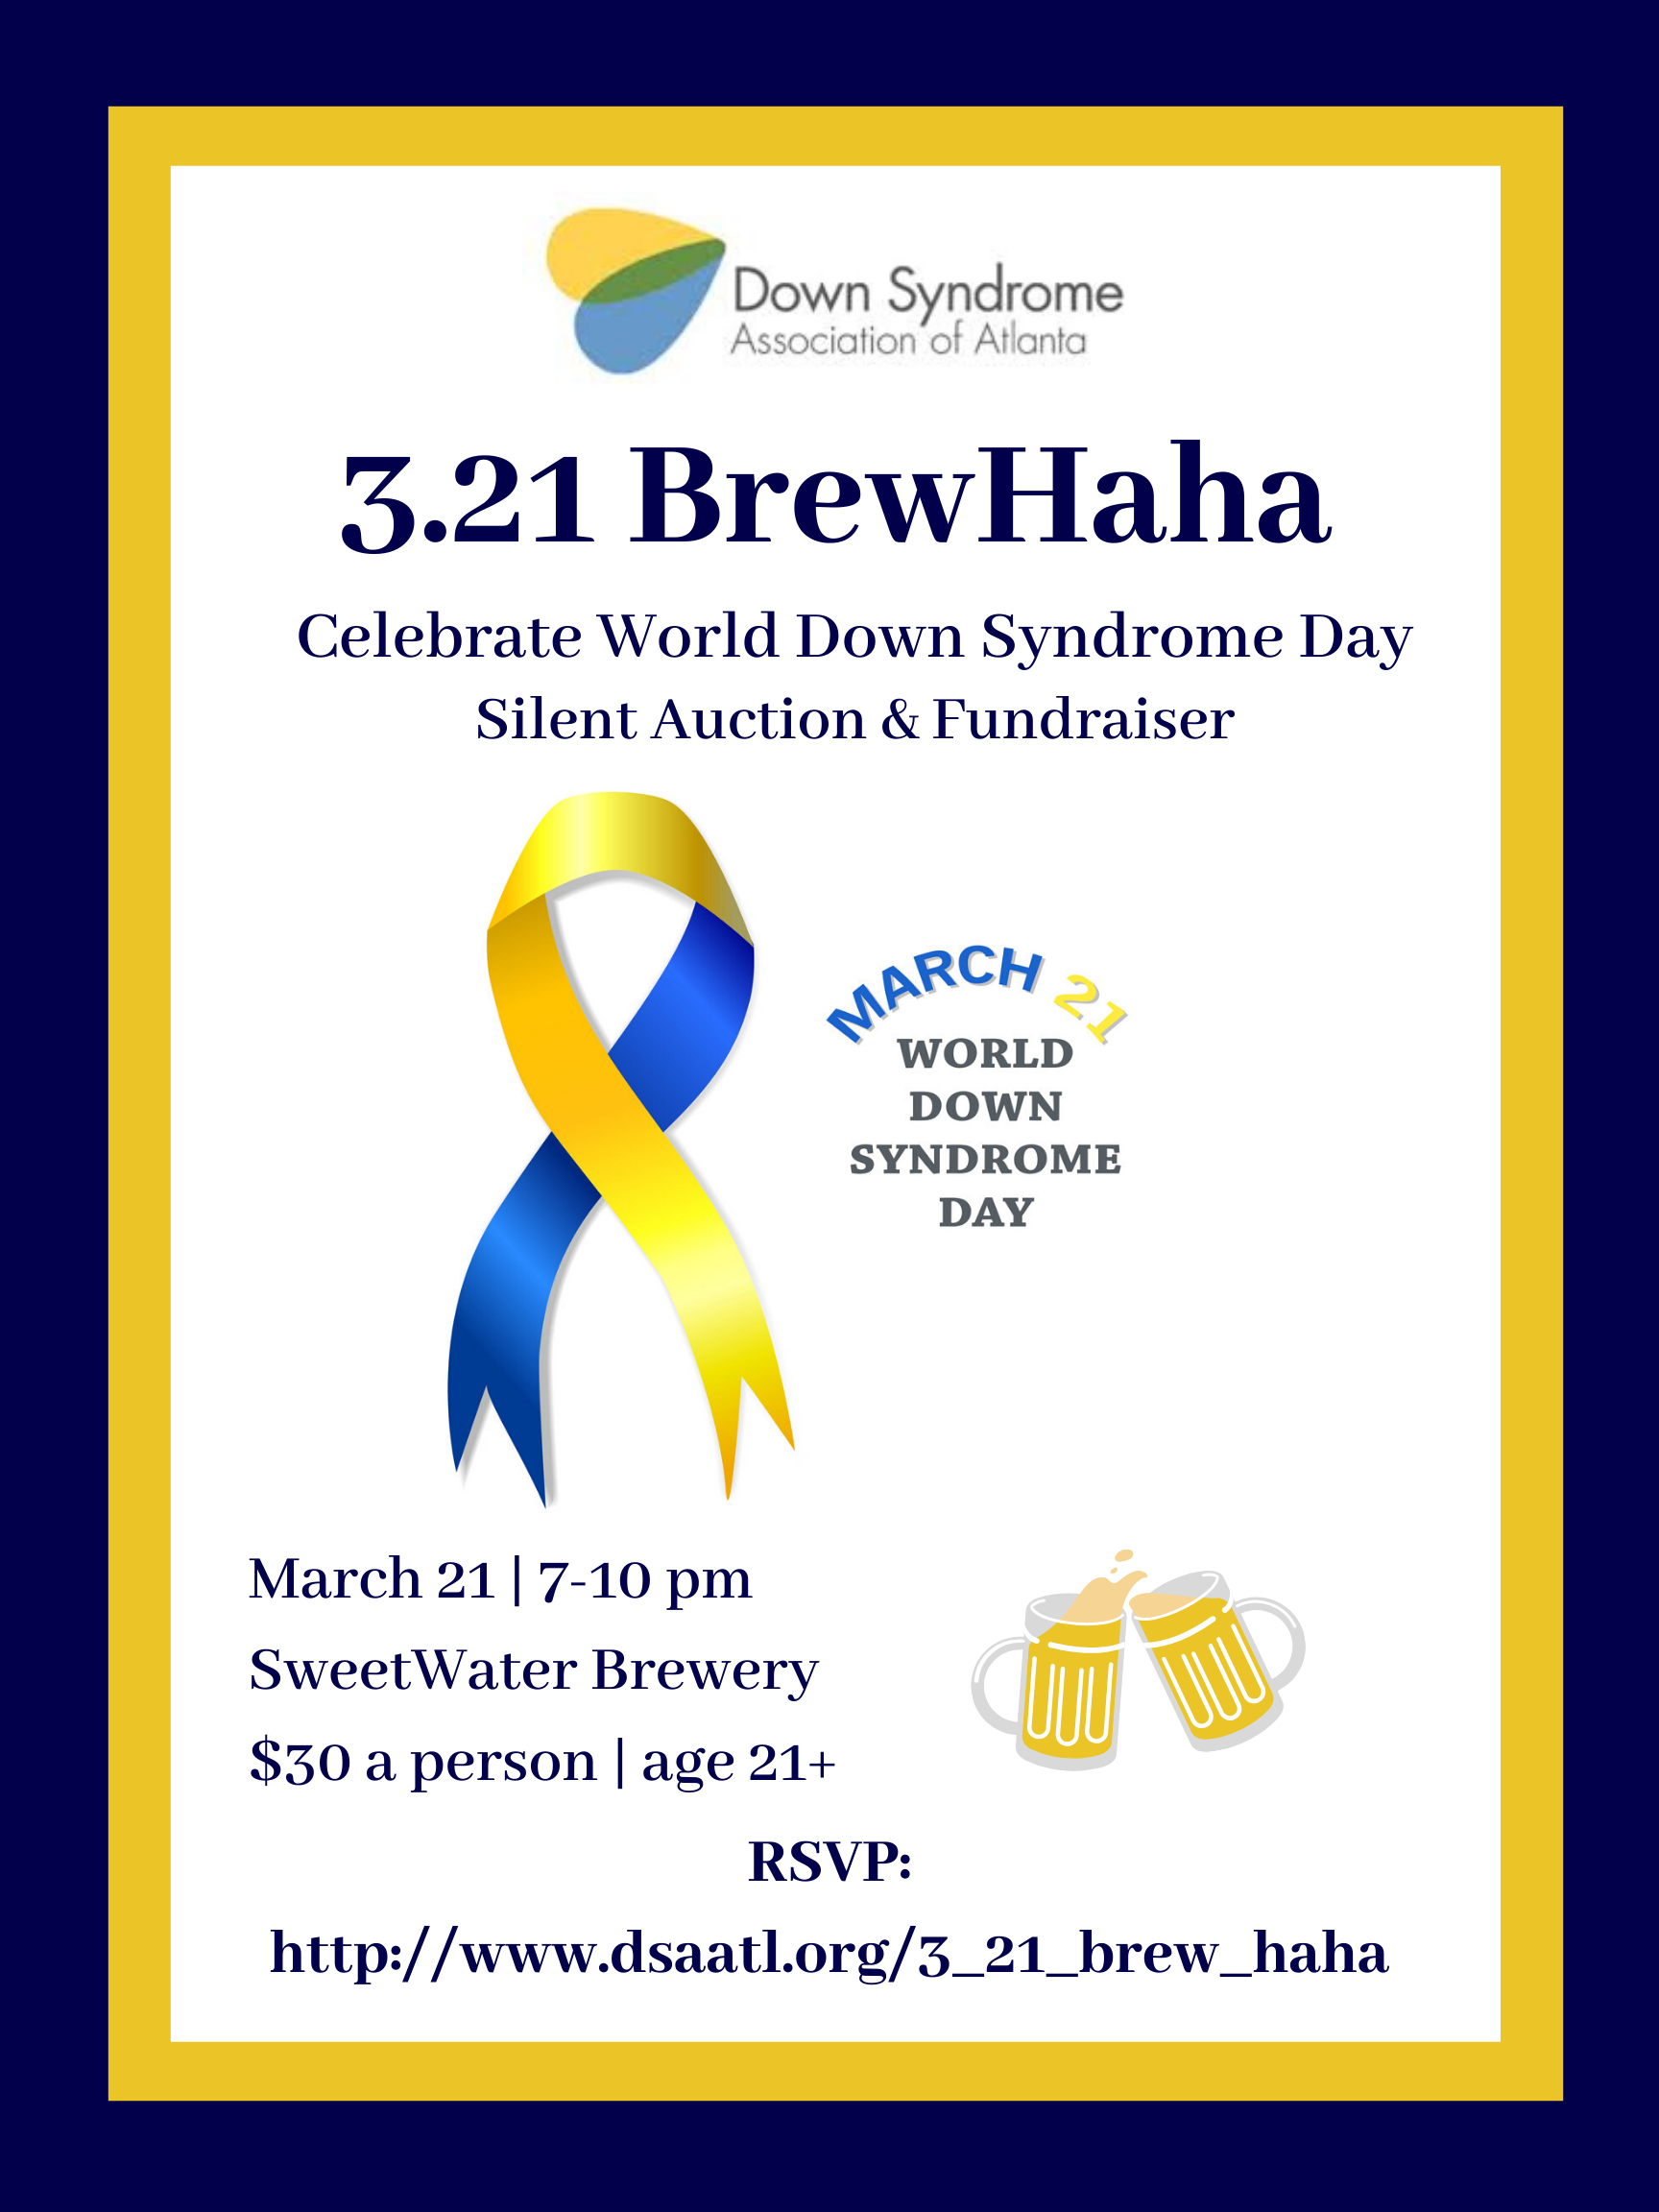 3.21 brewhaha flyer